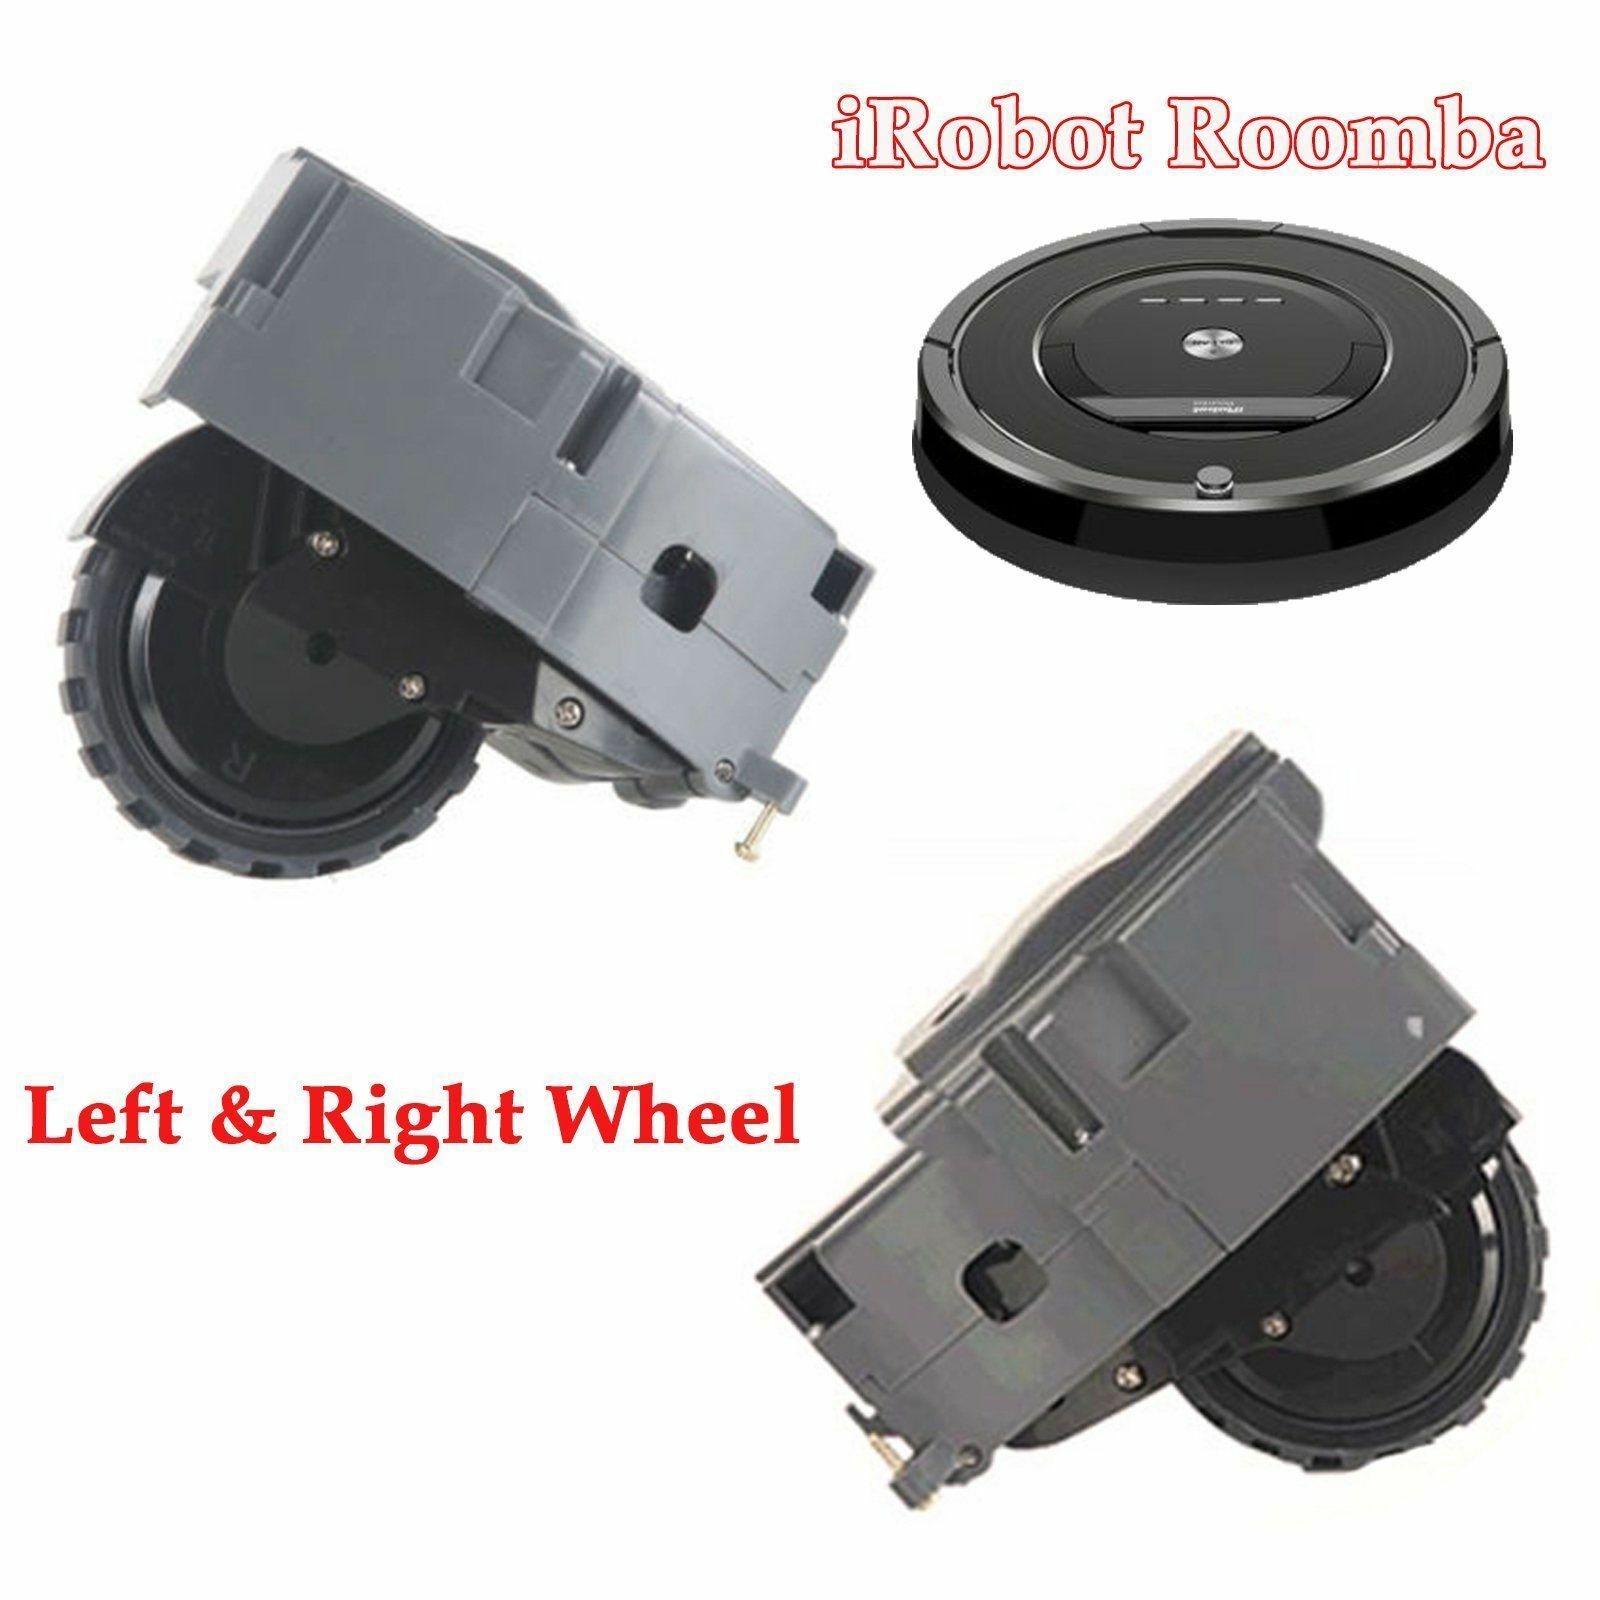 Left & Right Wheel Module Replacement Part for iRobot Roomba 500 600 700 800 900